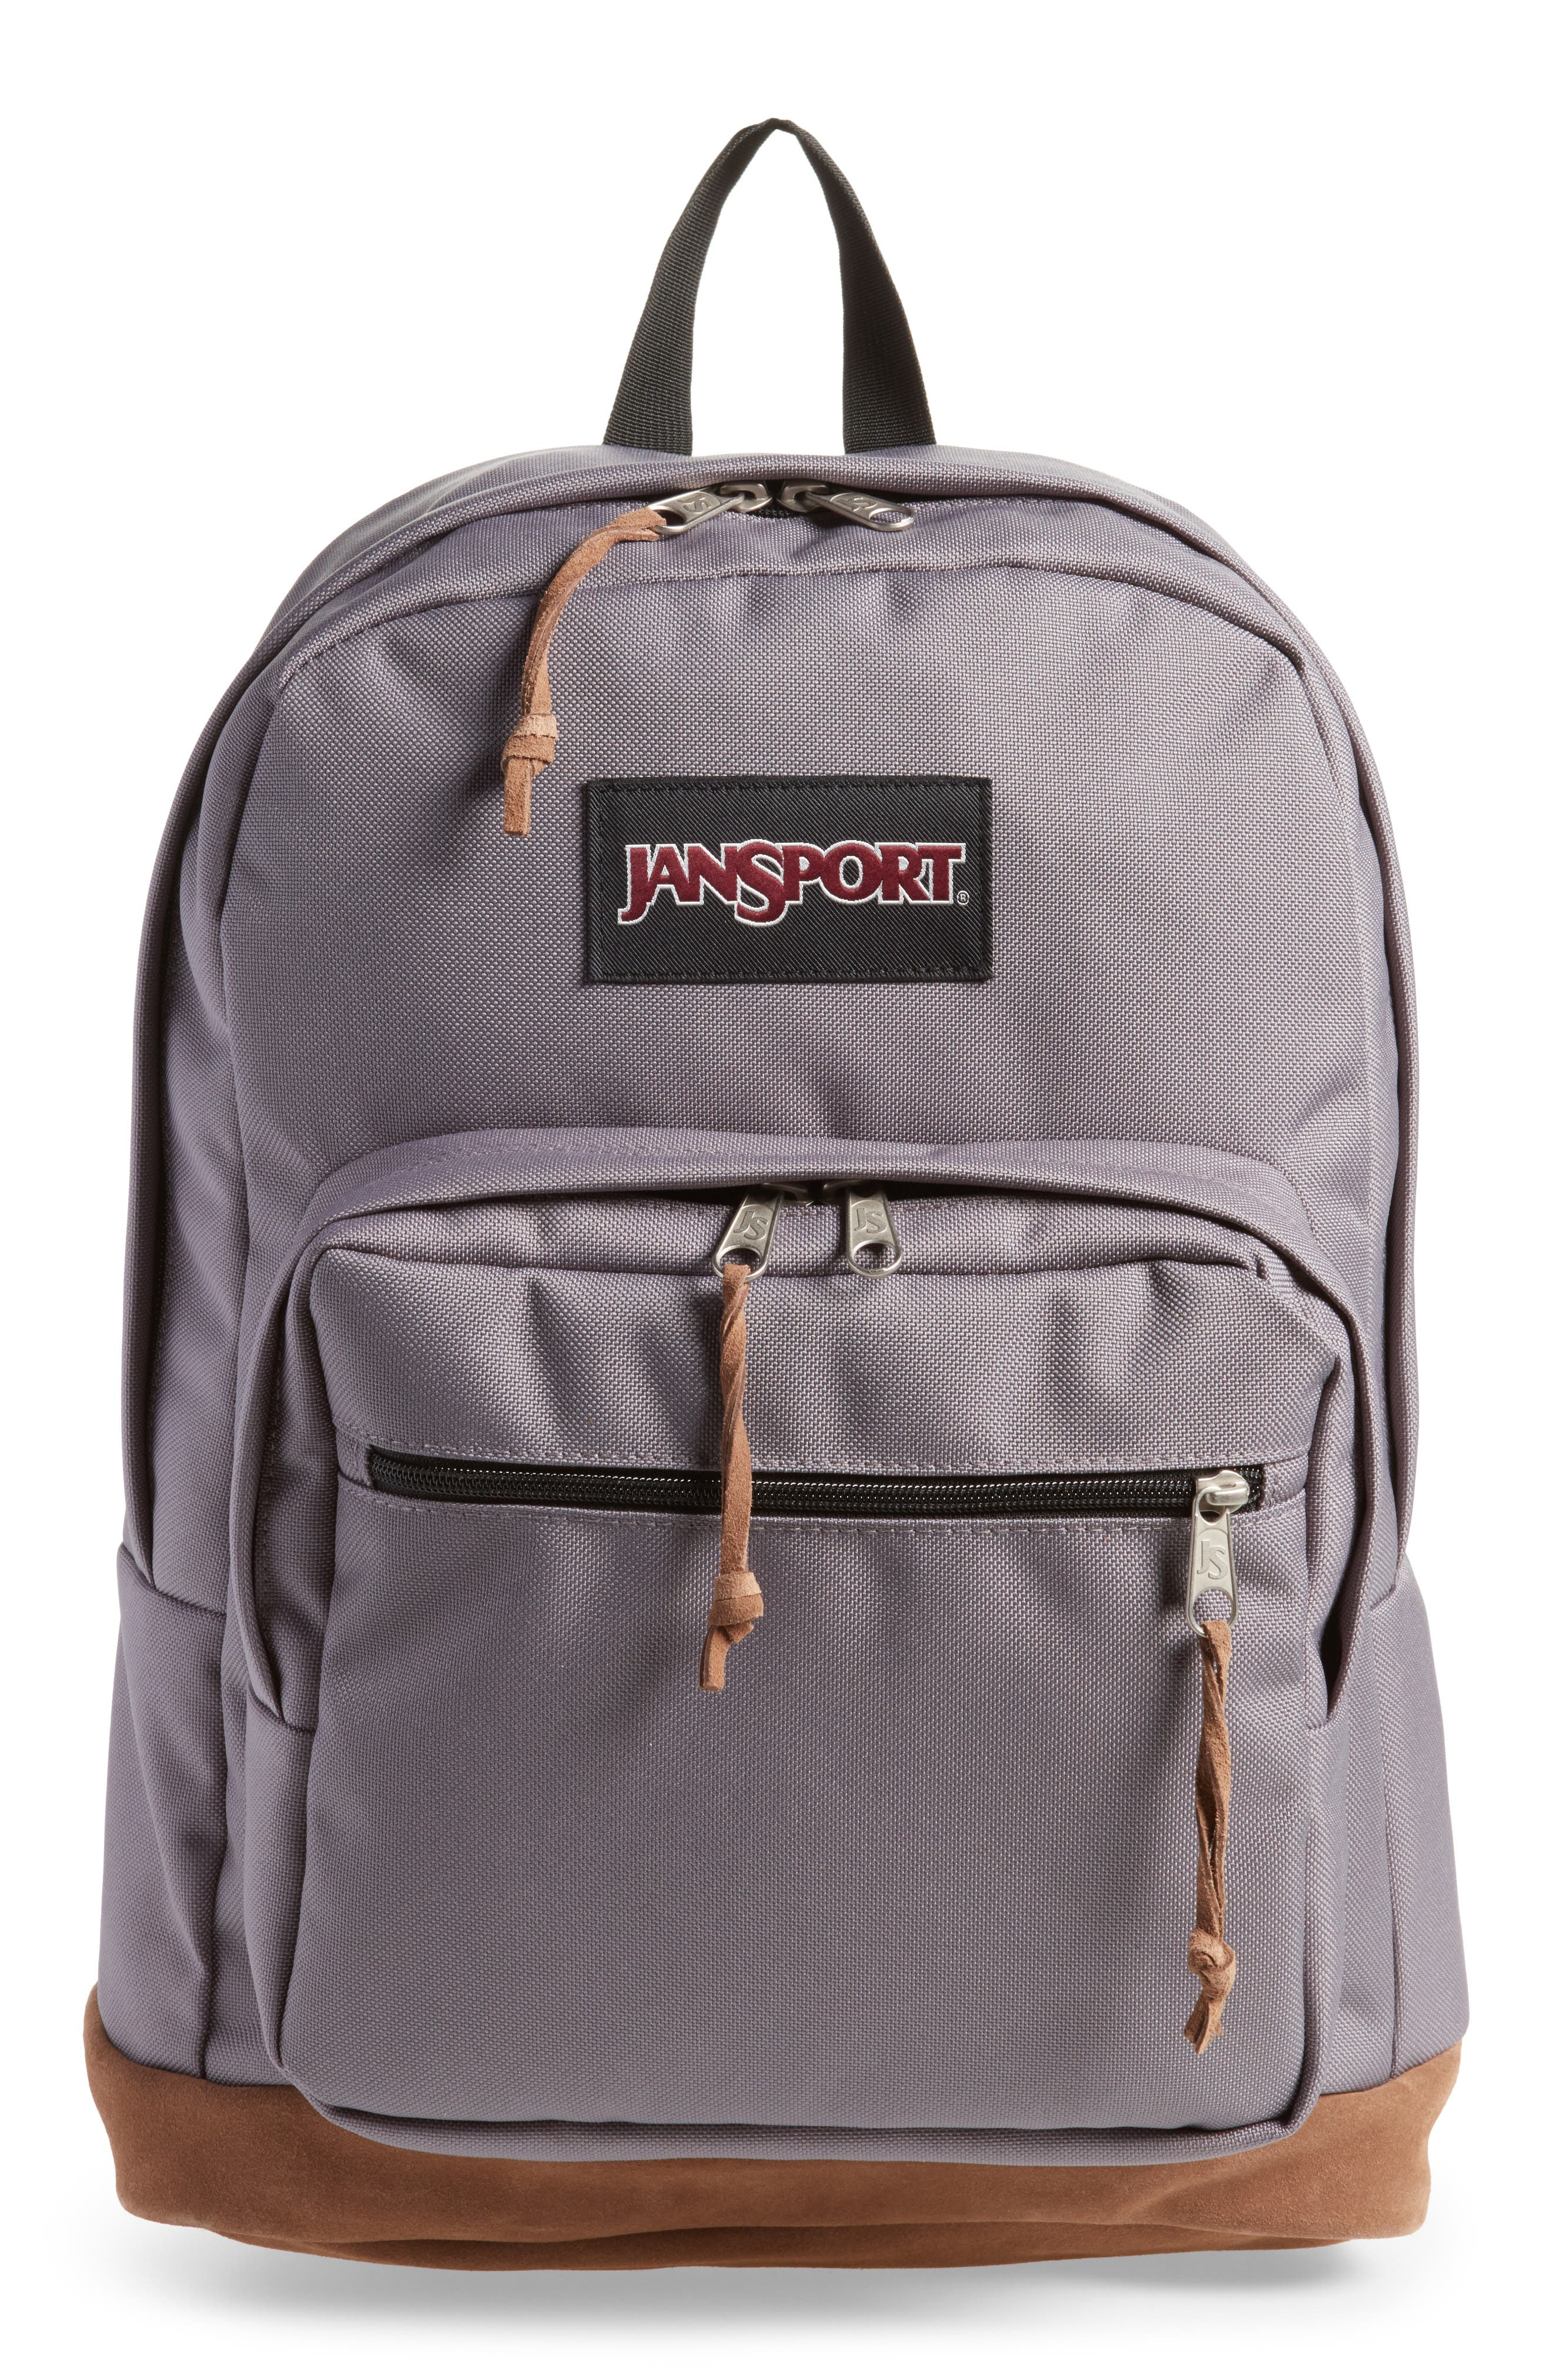 Right Pack Backpack,                             Main thumbnail 1, color,                             030